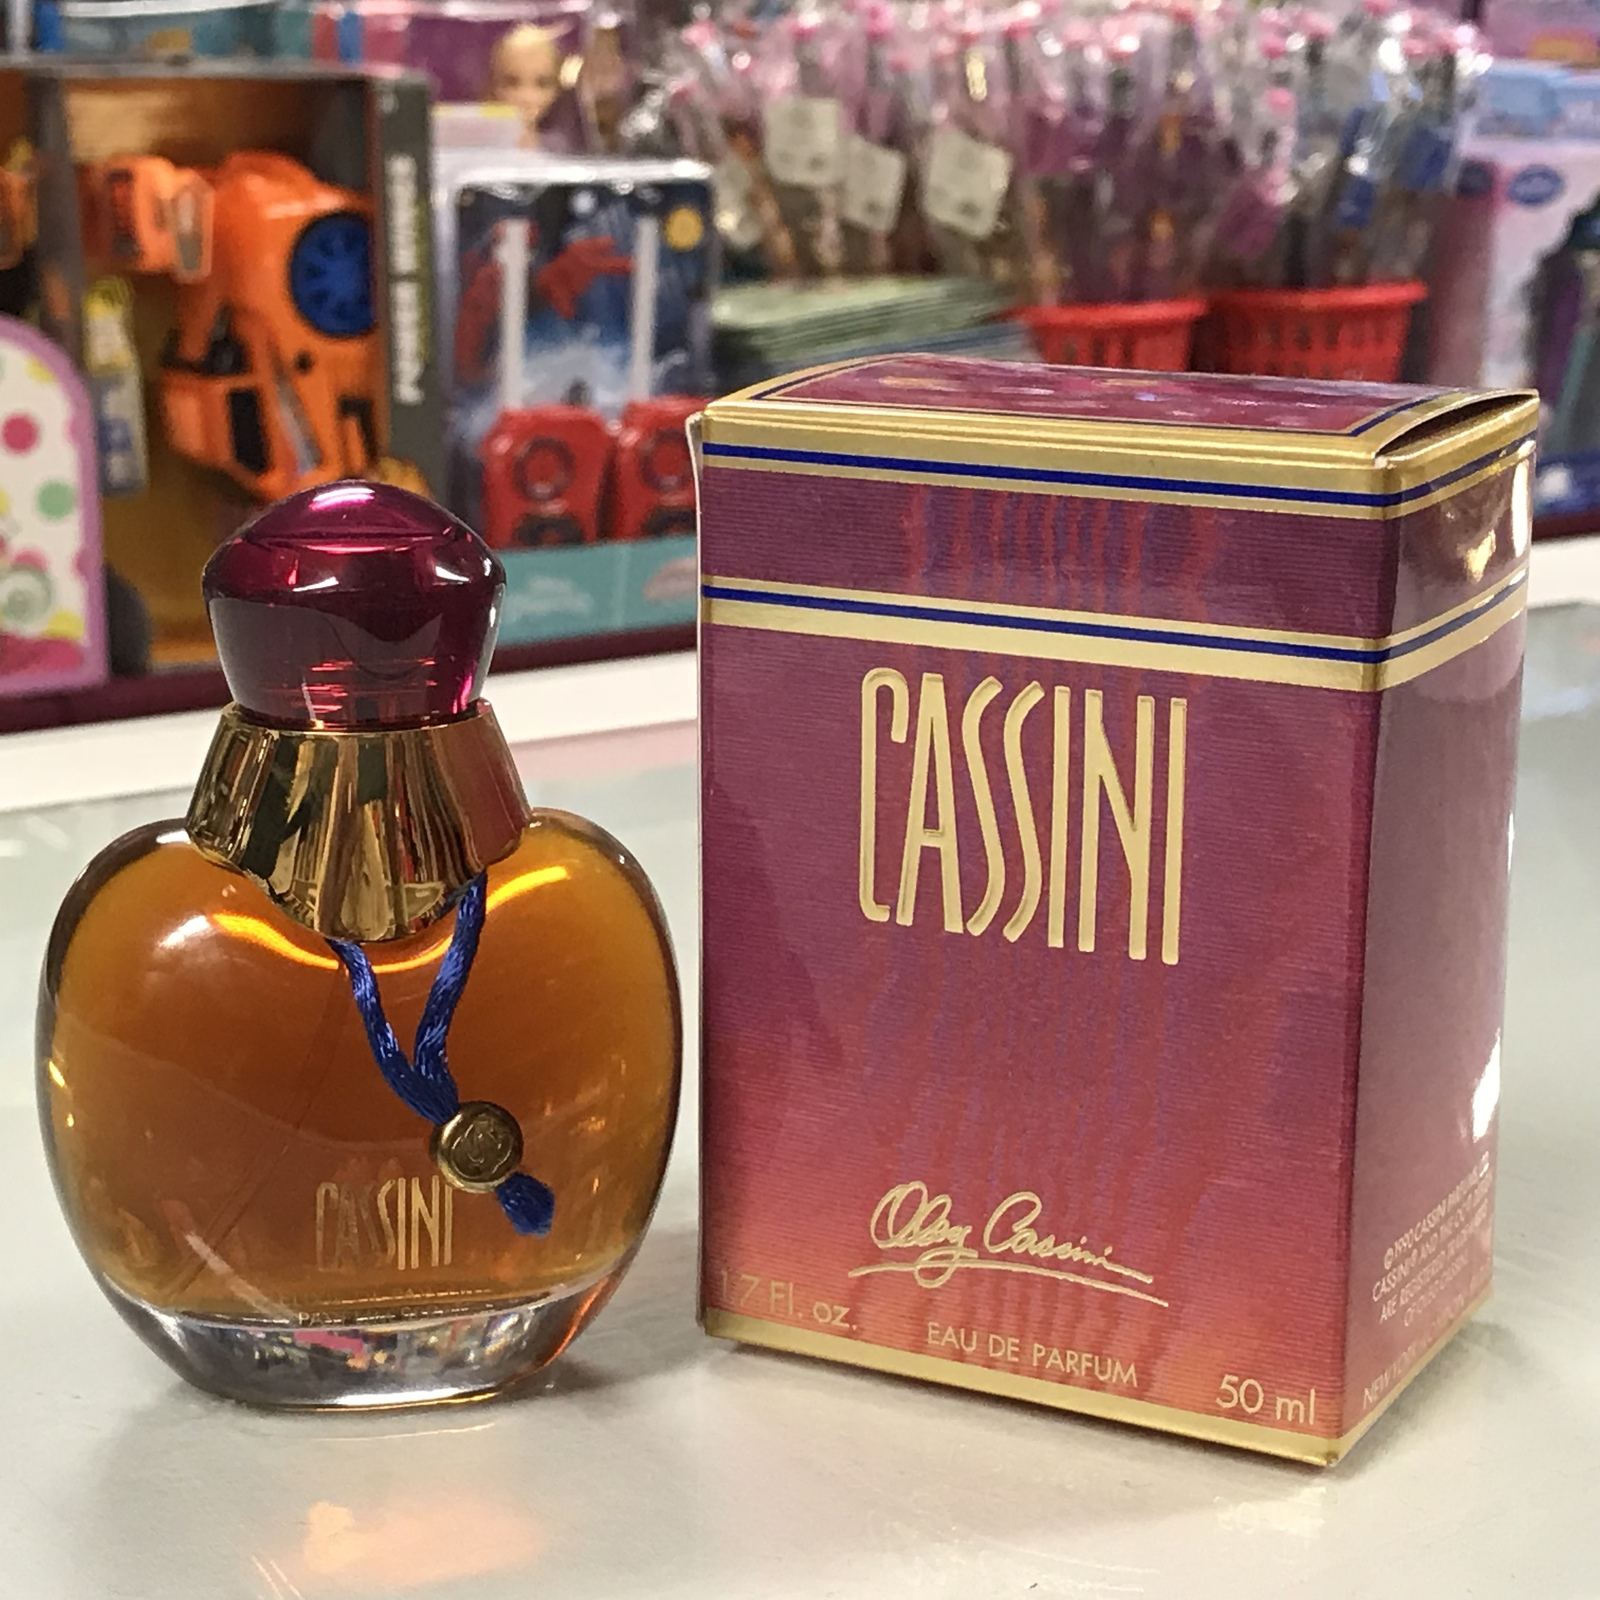 Cassini Perfume for Women 1.7 oz Eau De